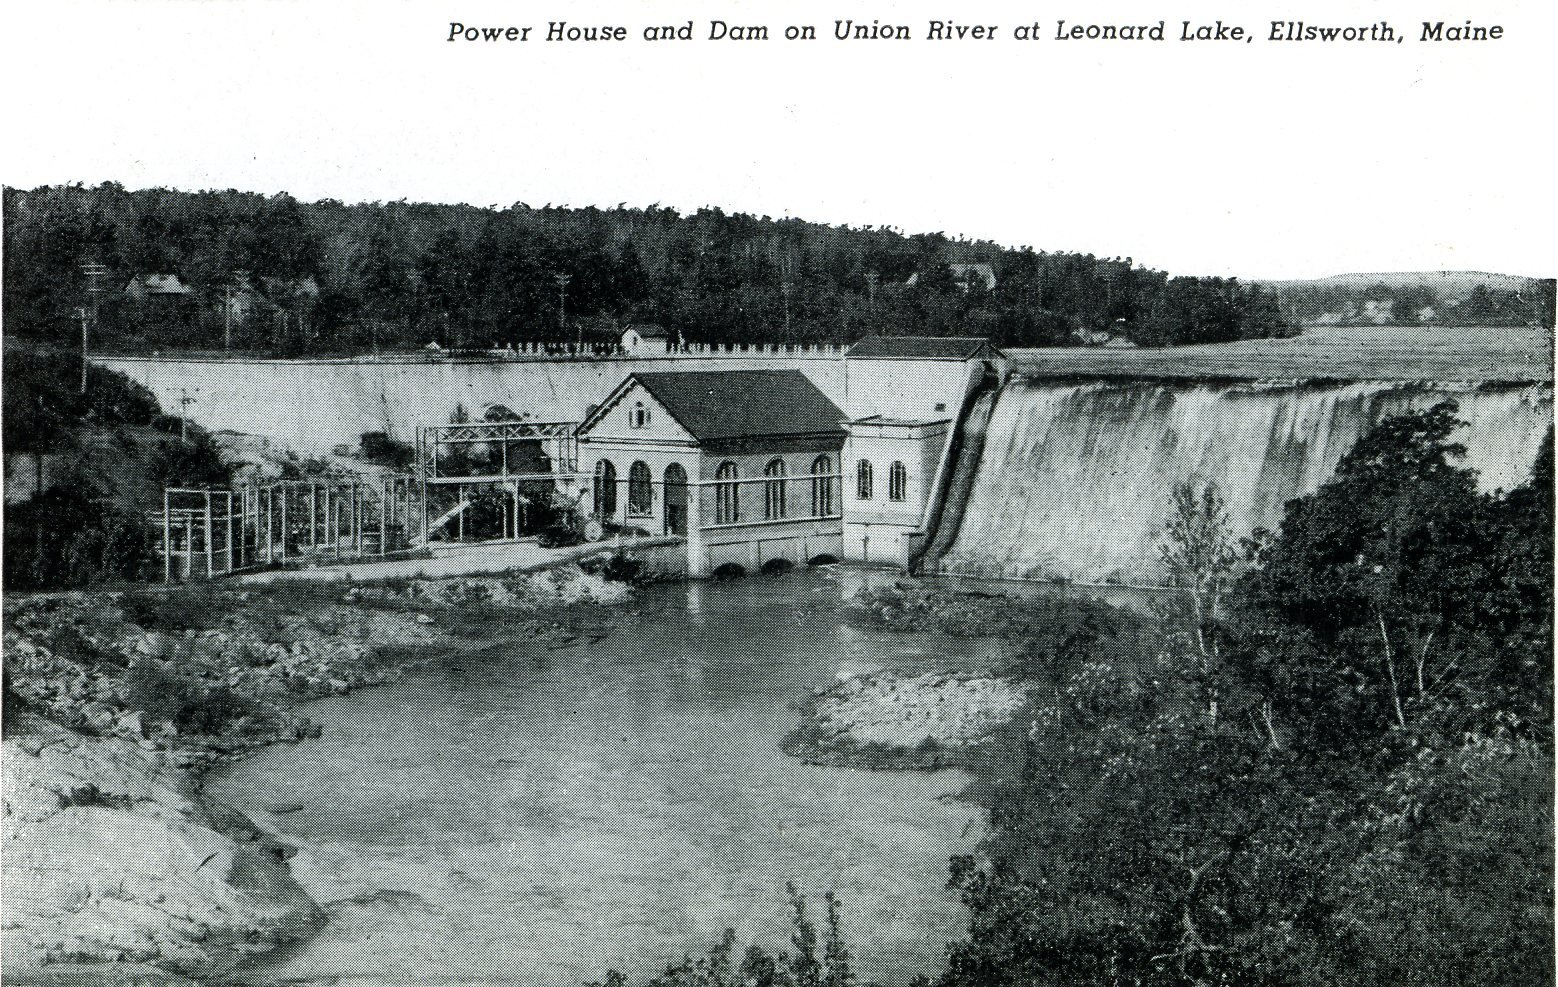 The Ellsworth Power House and Dam in 1920. Though the dam held as water spilled over and around it, the power house needed substantial repairs from the overflow and debris that crashed through the roof. (Ellsworth Public Library).